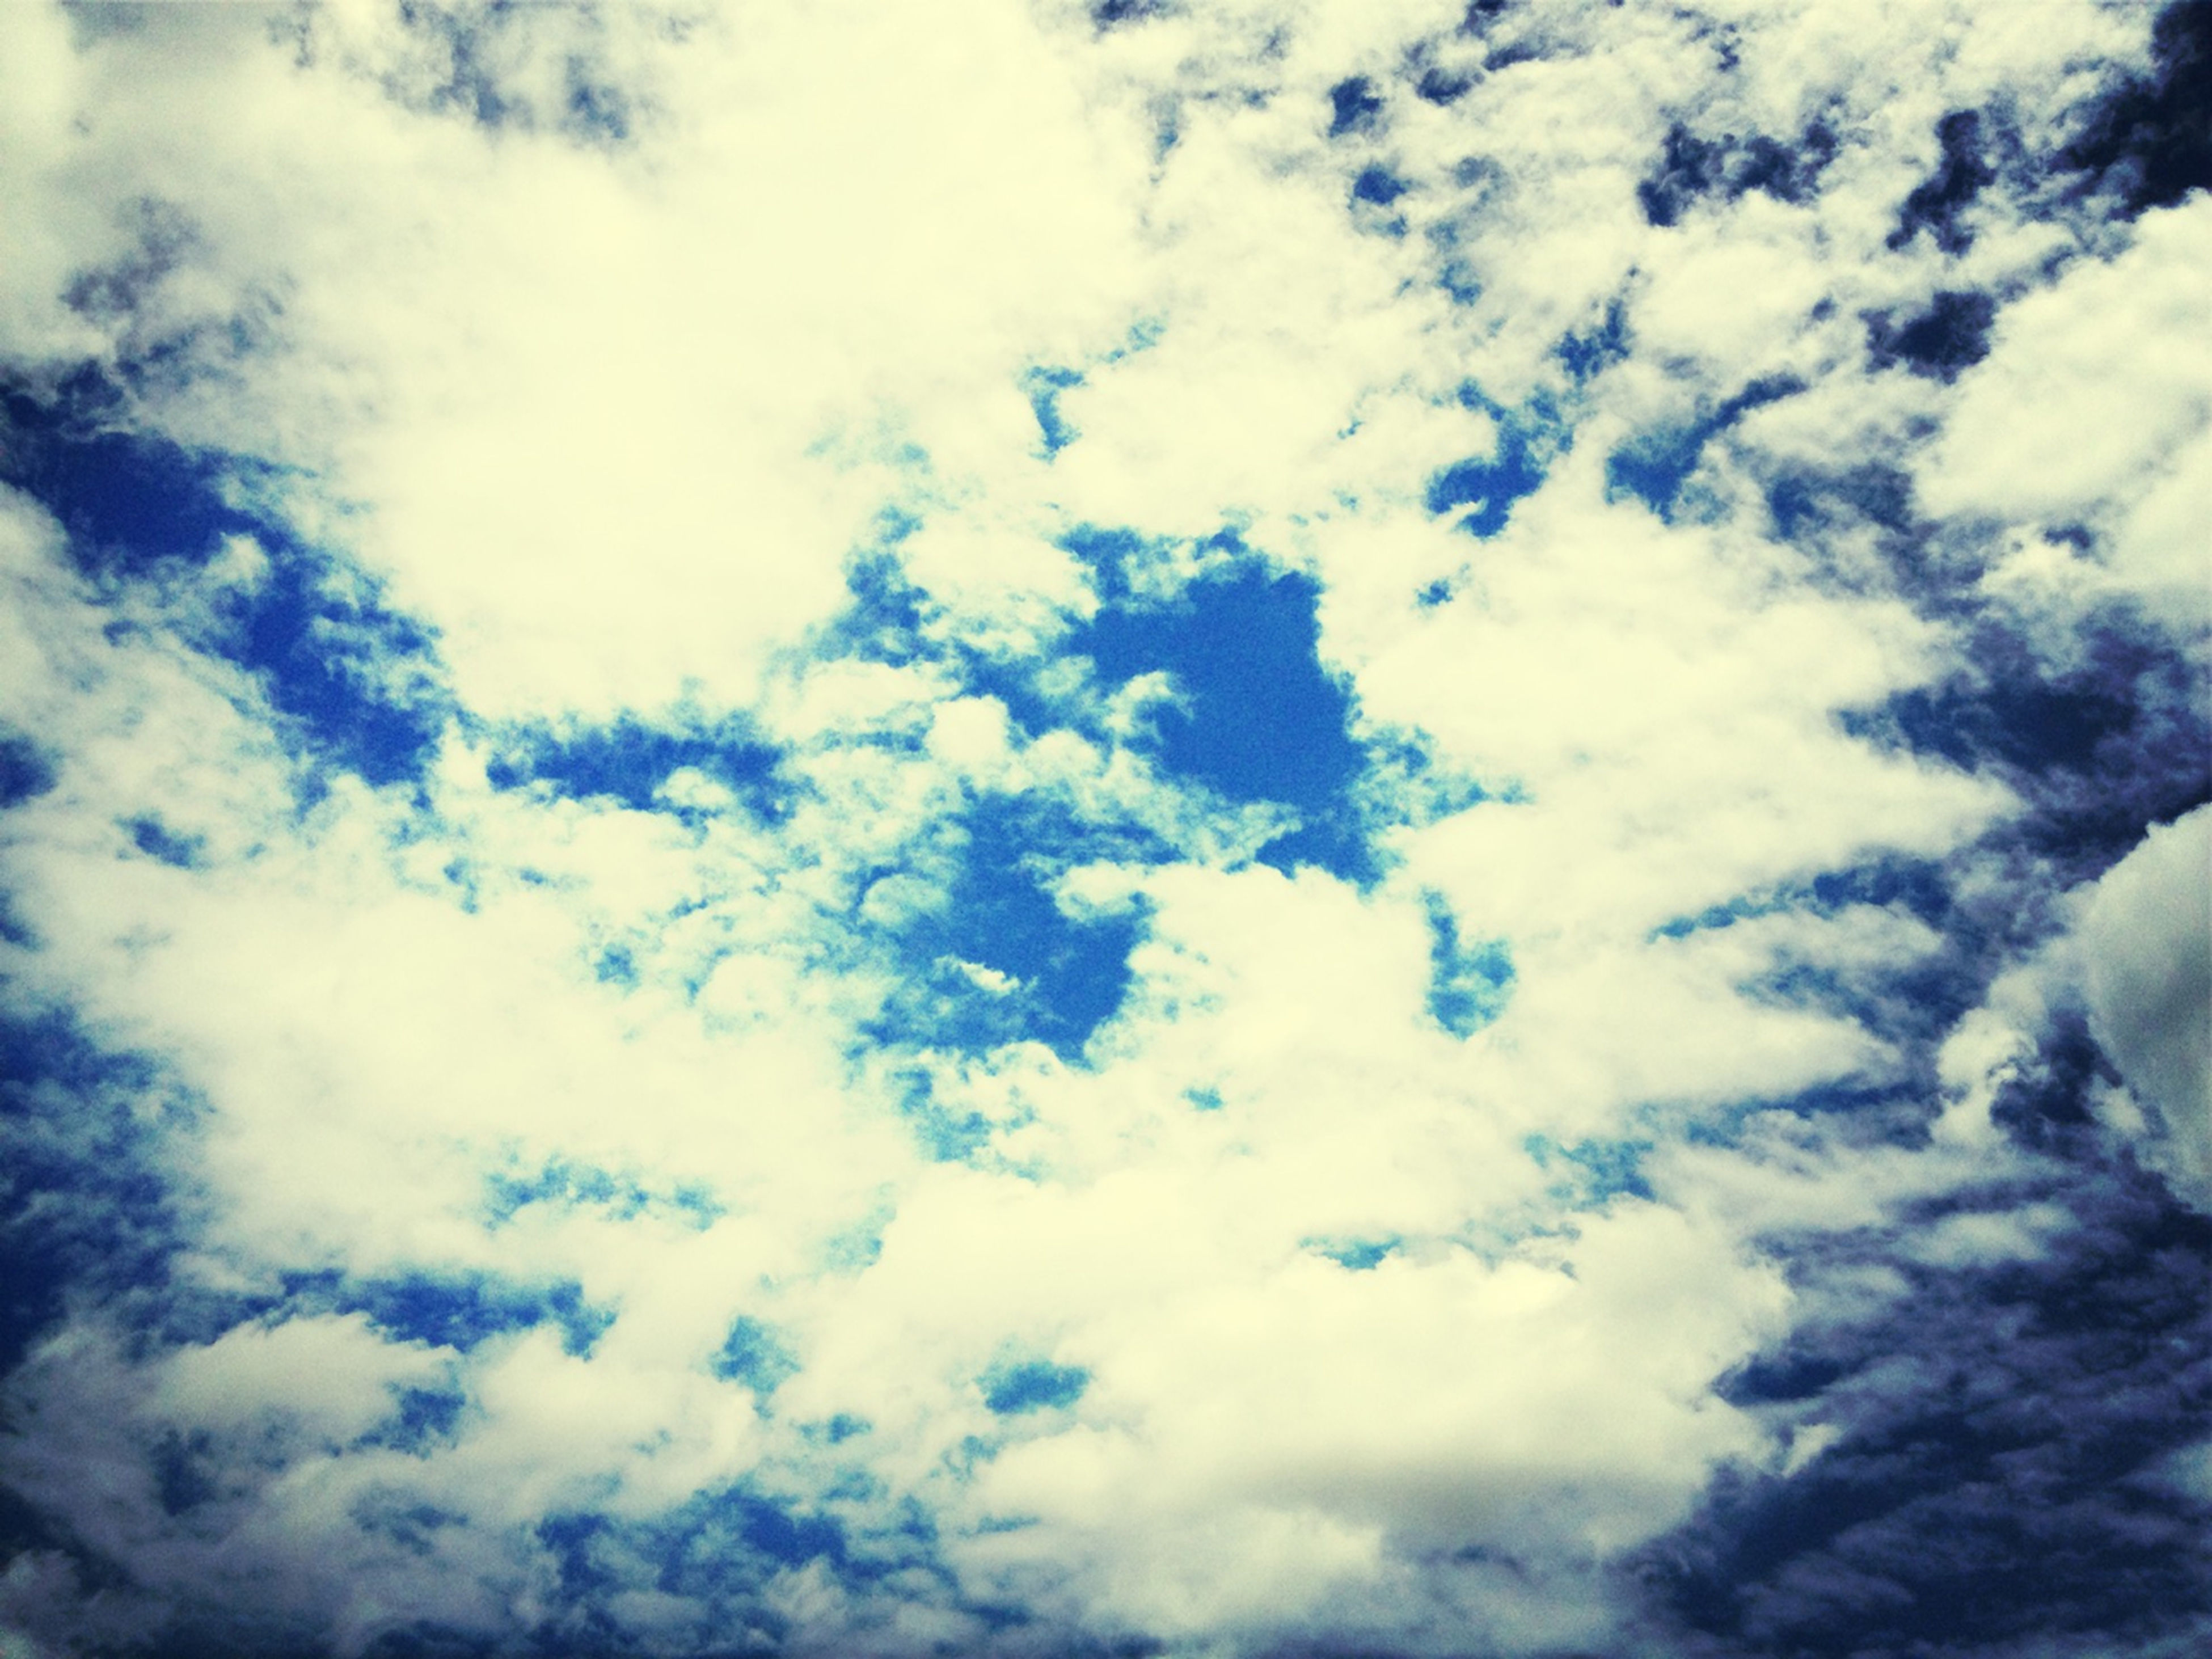 low angle view, sky, sky only, cloud - sky, backgrounds, beauty in nature, tranquility, full frame, cloudy, nature, scenics, cloudscape, tranquil scene, white color, blue, cloud, idyllic, day, fluffy, outdoors